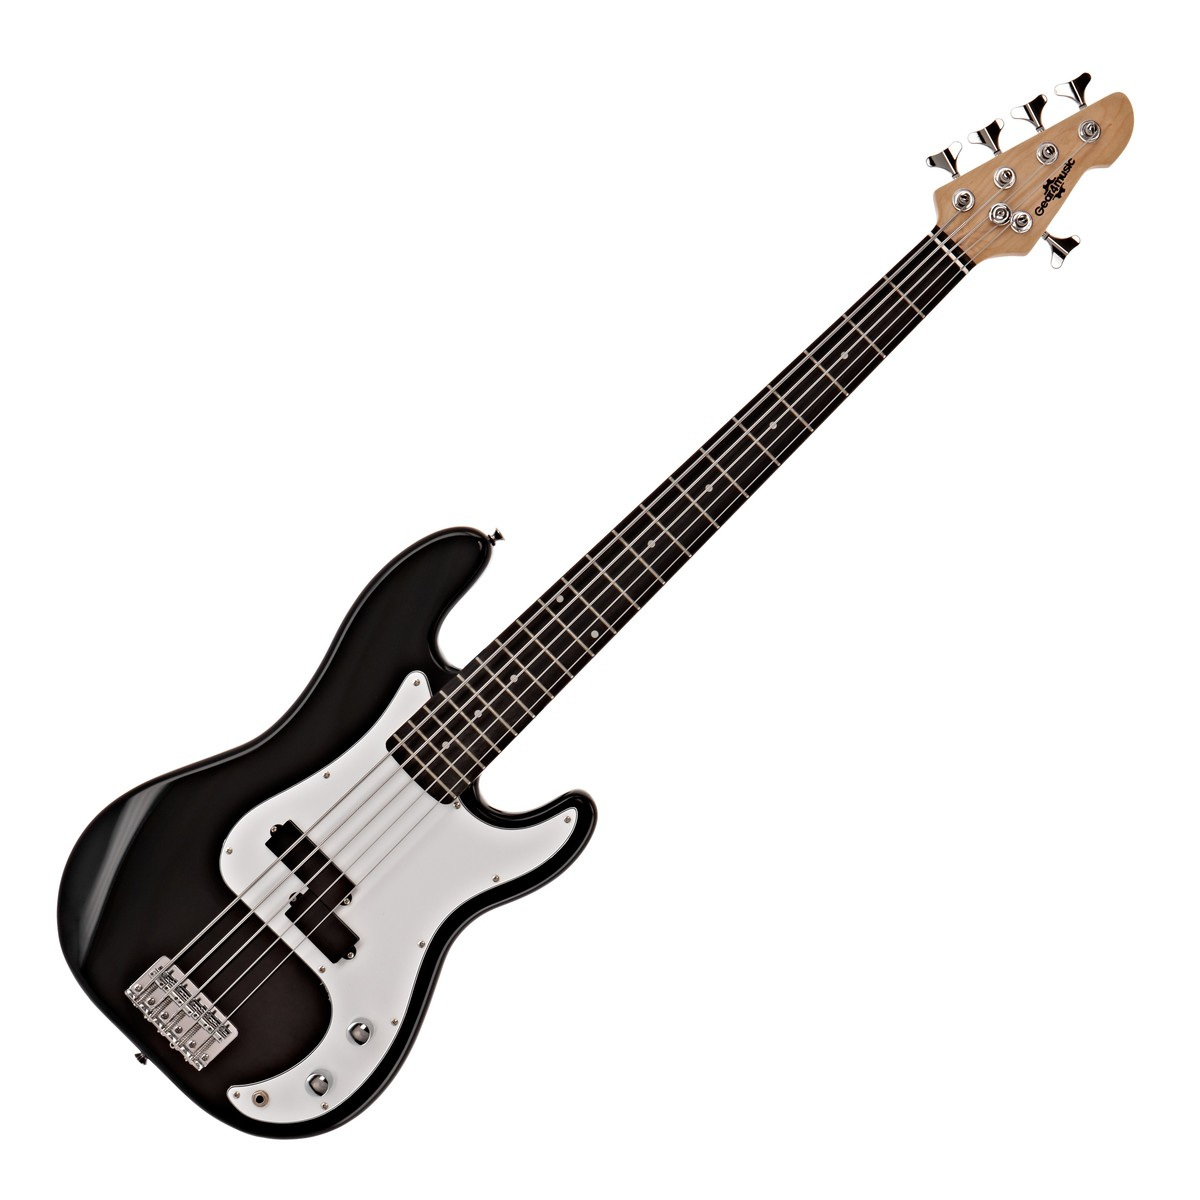 Click to view product details and reviews for La 5 String Bass Guitar By Gear4music Black.